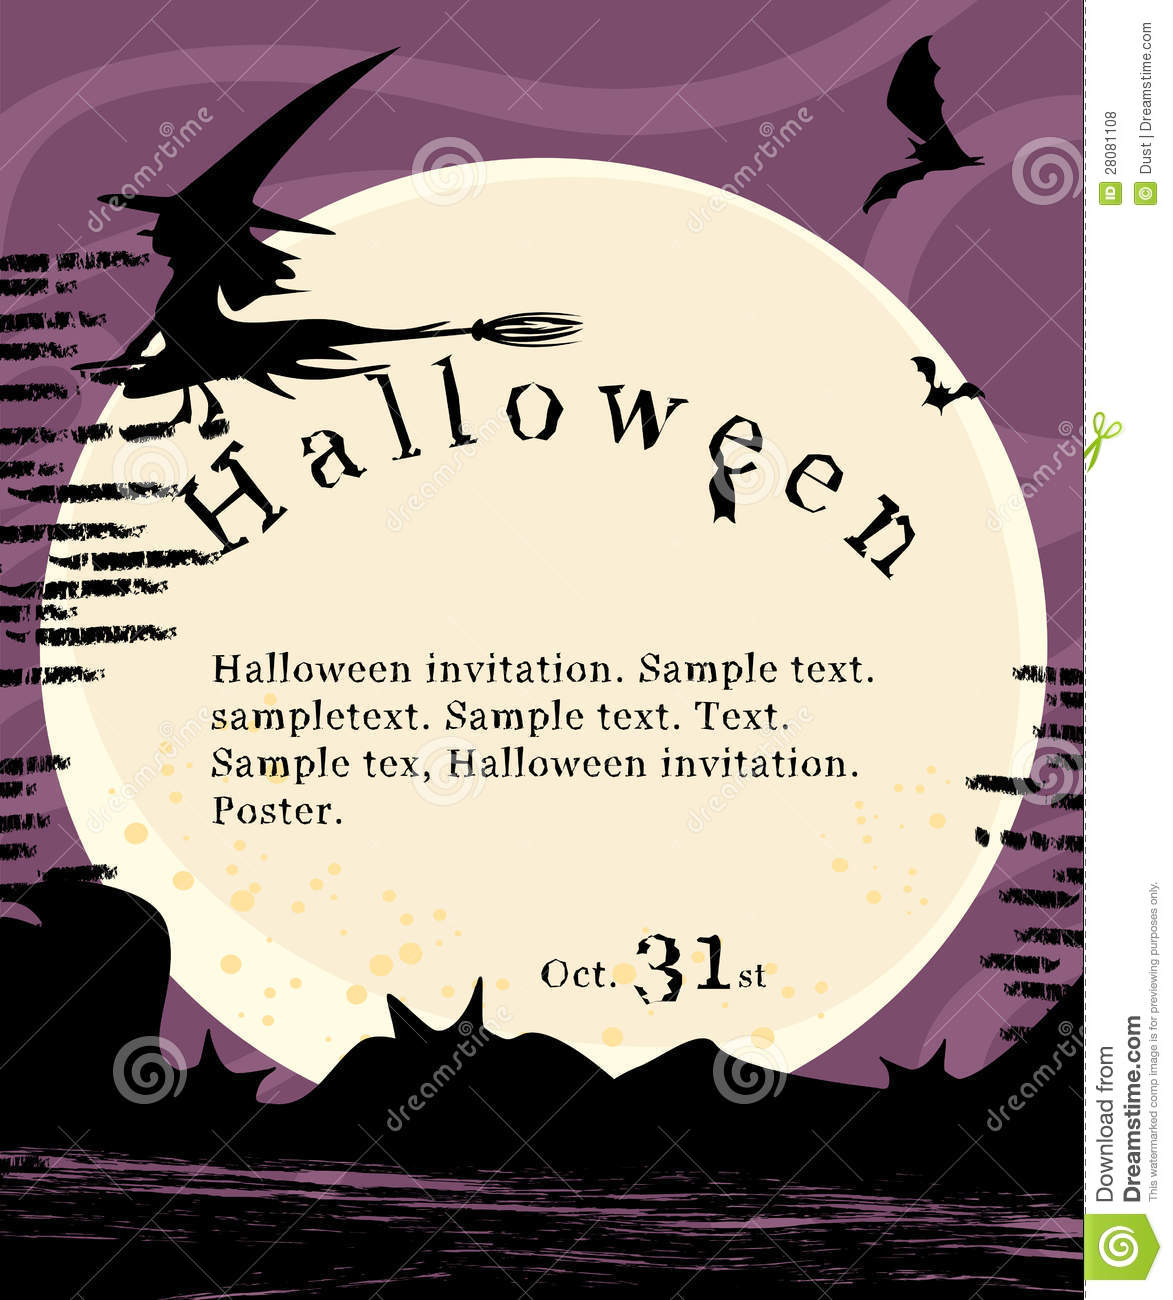 Affiche d 39 invitation de halloween illustration de vecteur illustration du c te nuages 28081108 - Image d halloween gratuite ...